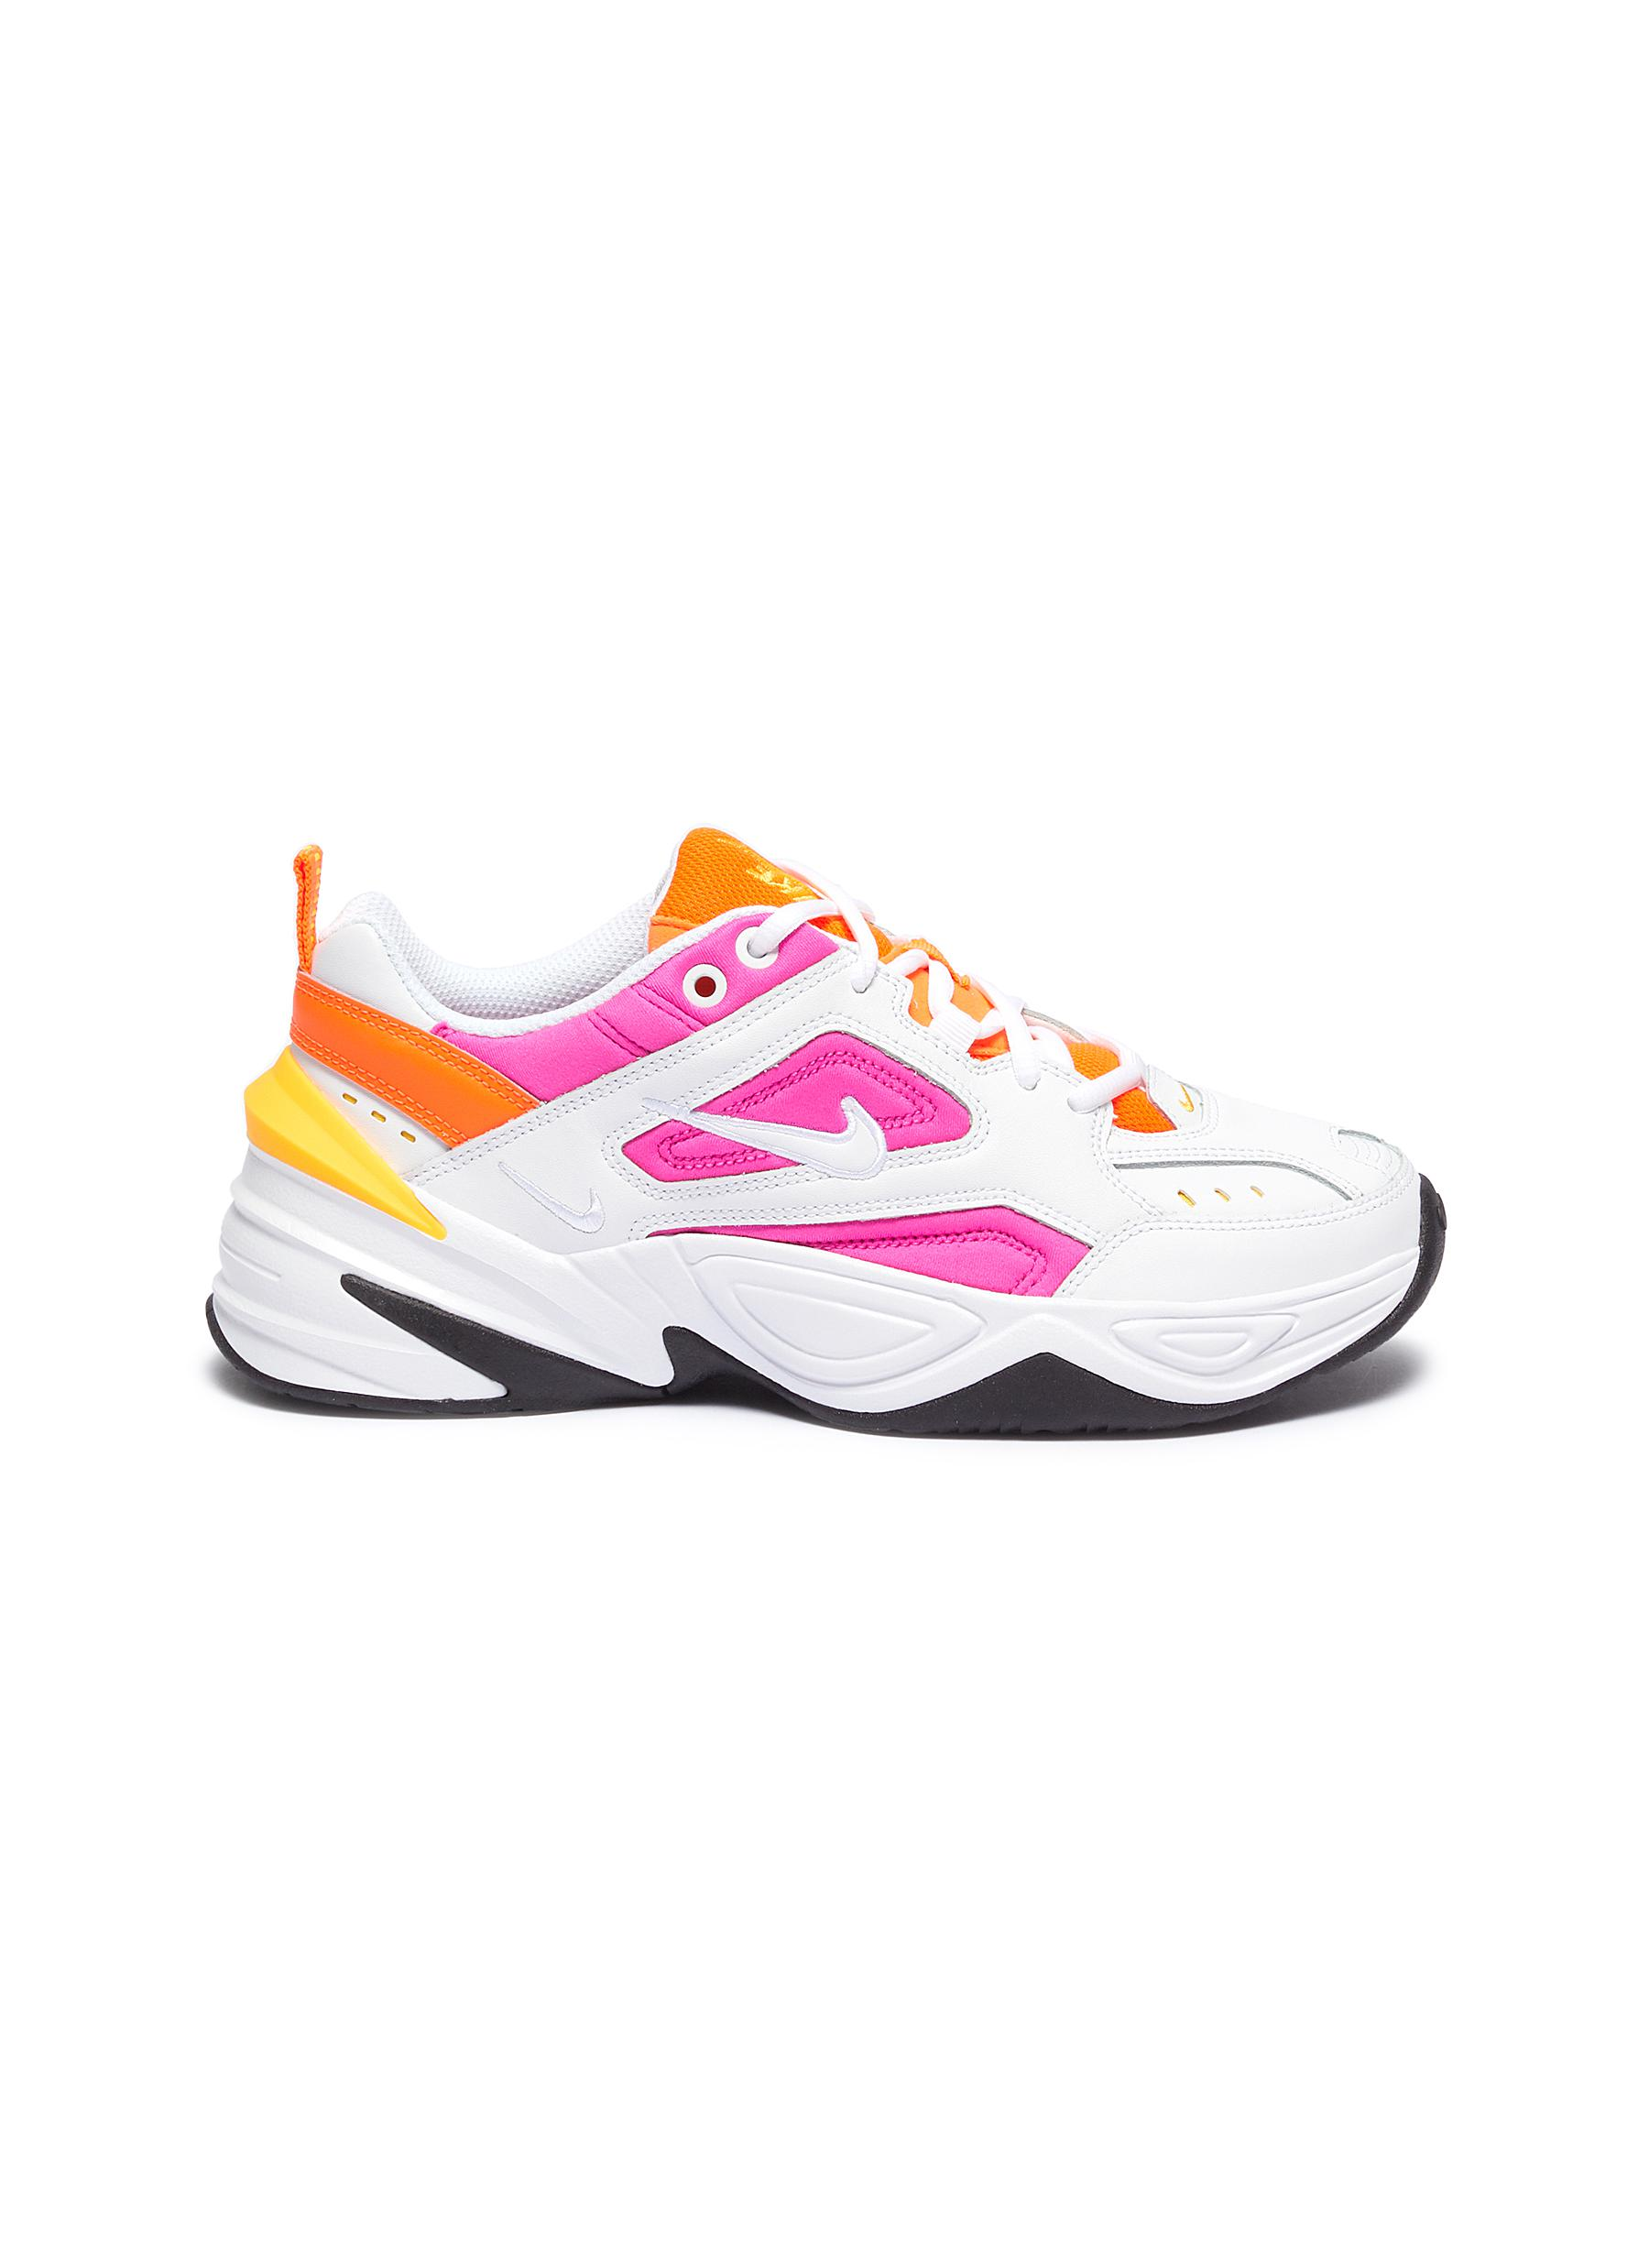 new york big discount great deals 2017 NIKE | 'M2K Tekno' sneakers | Women | Lane Crawford